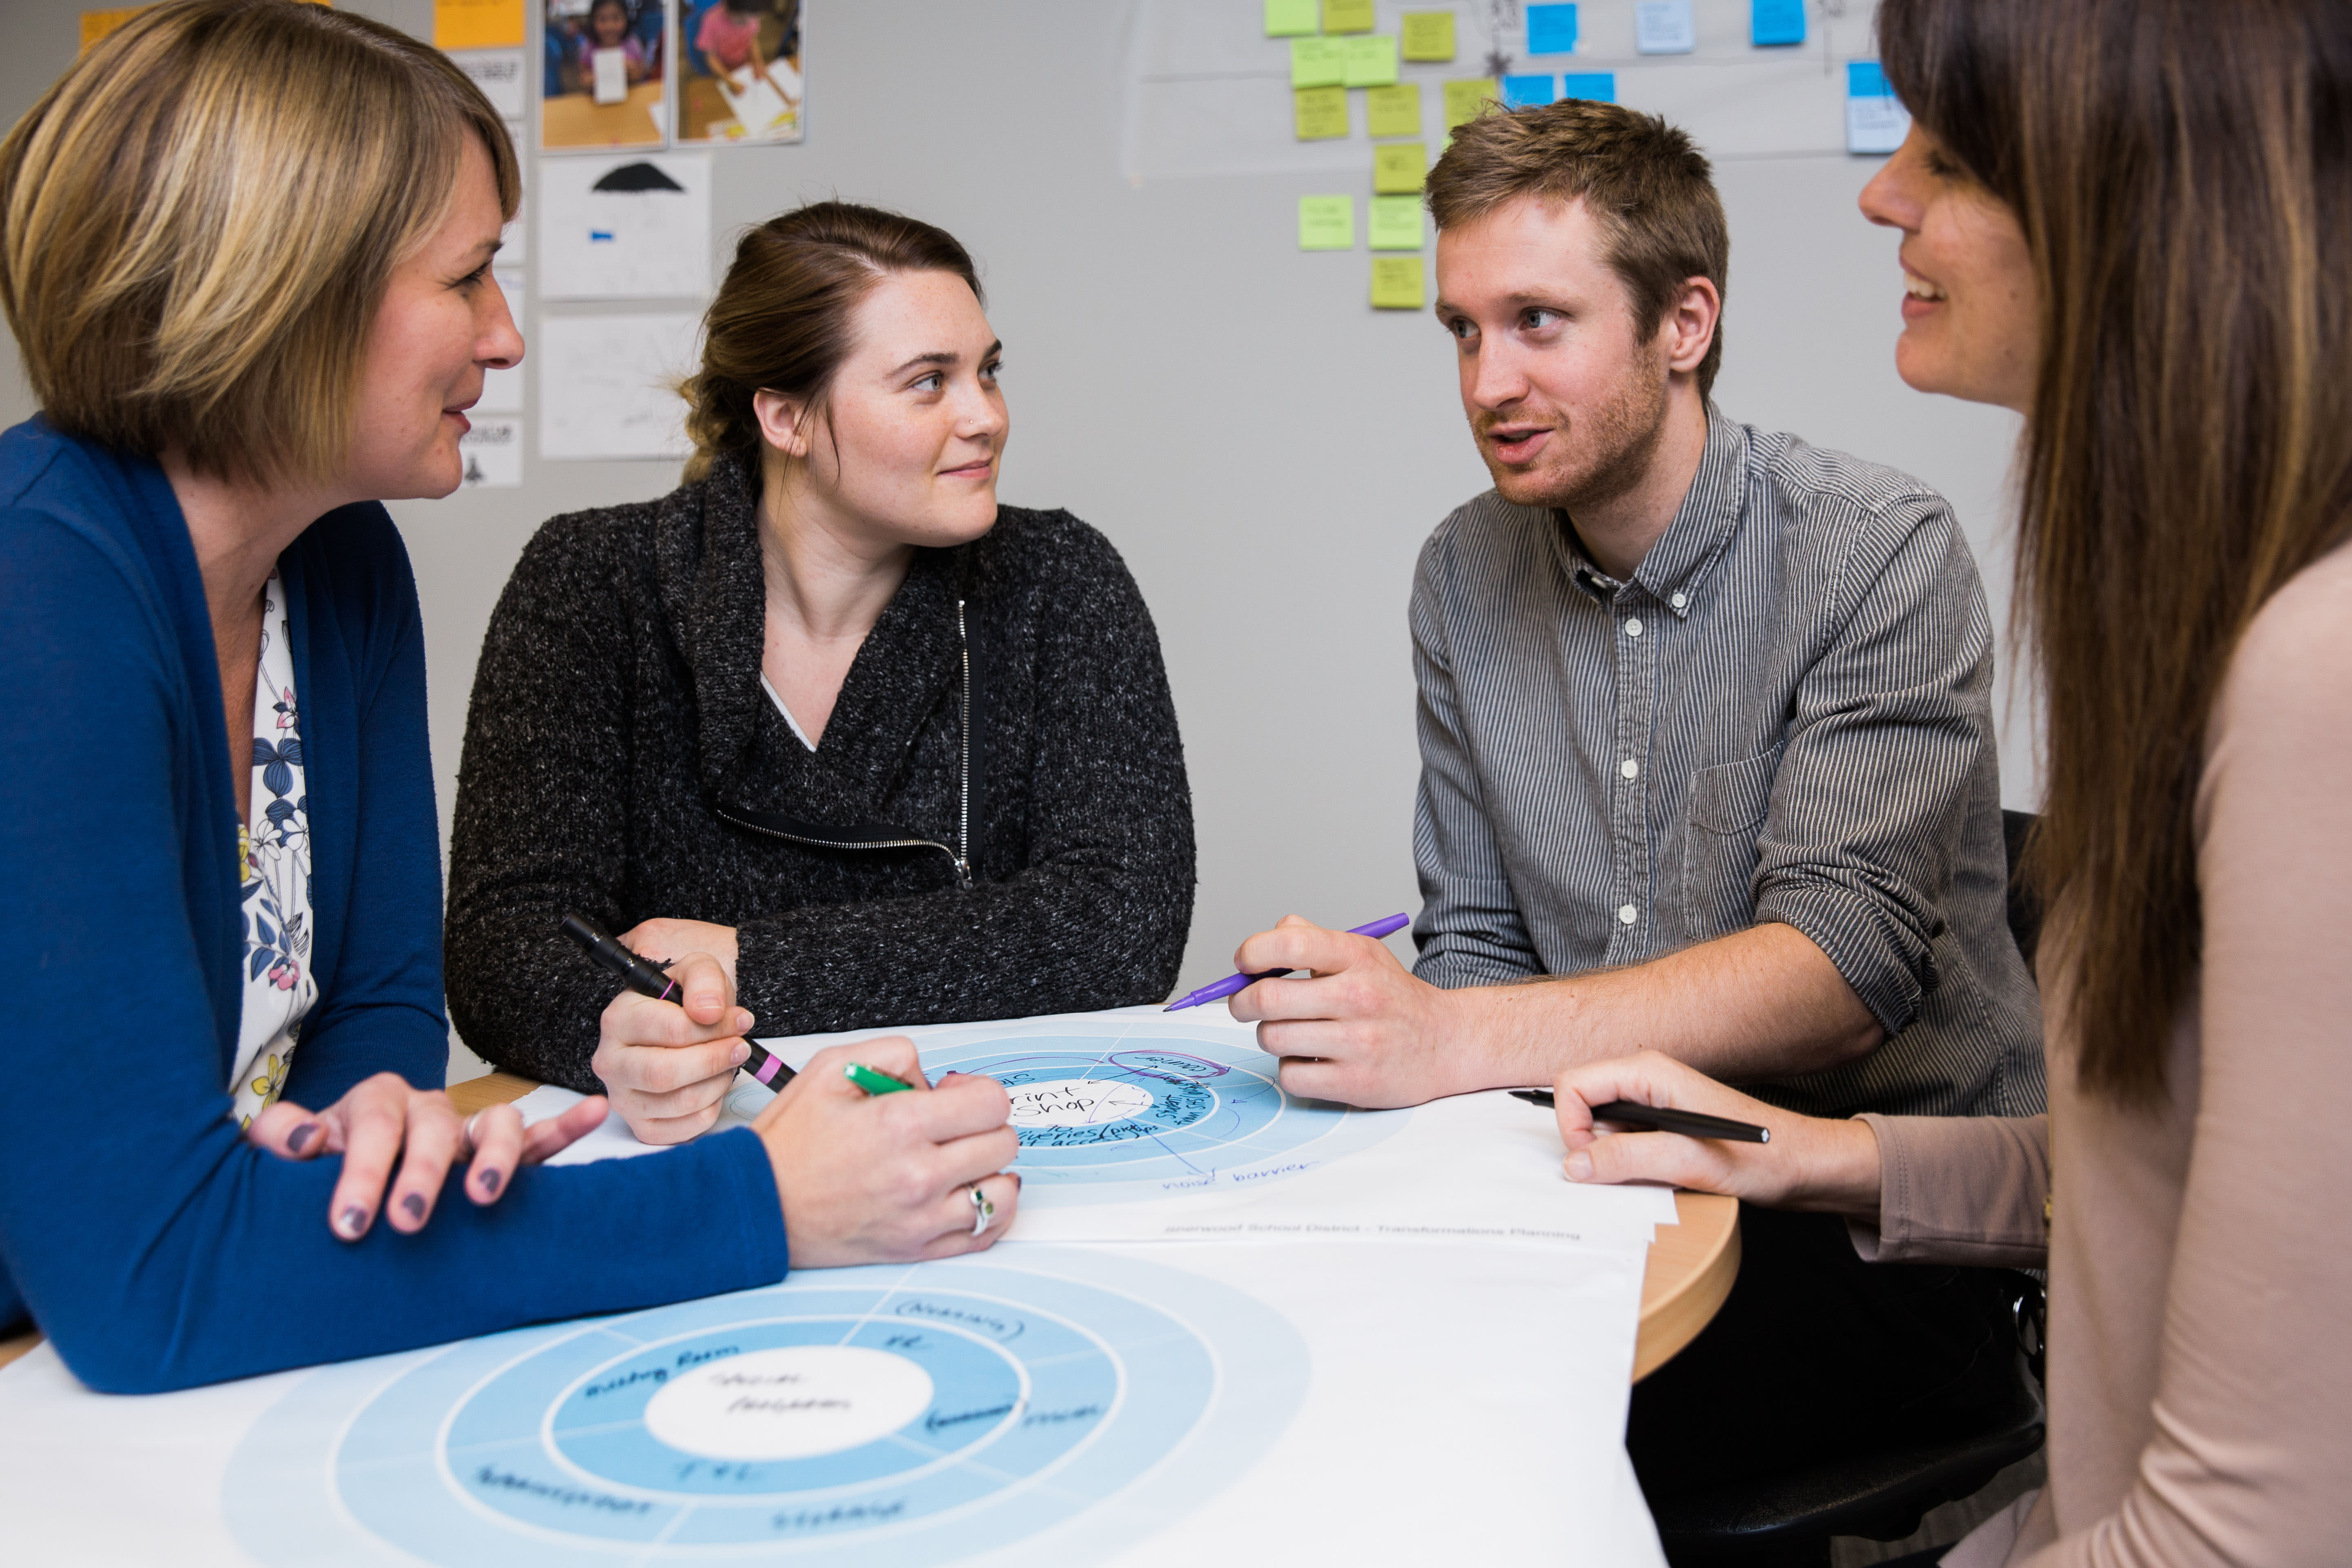 Travis (second from right) working with project team members